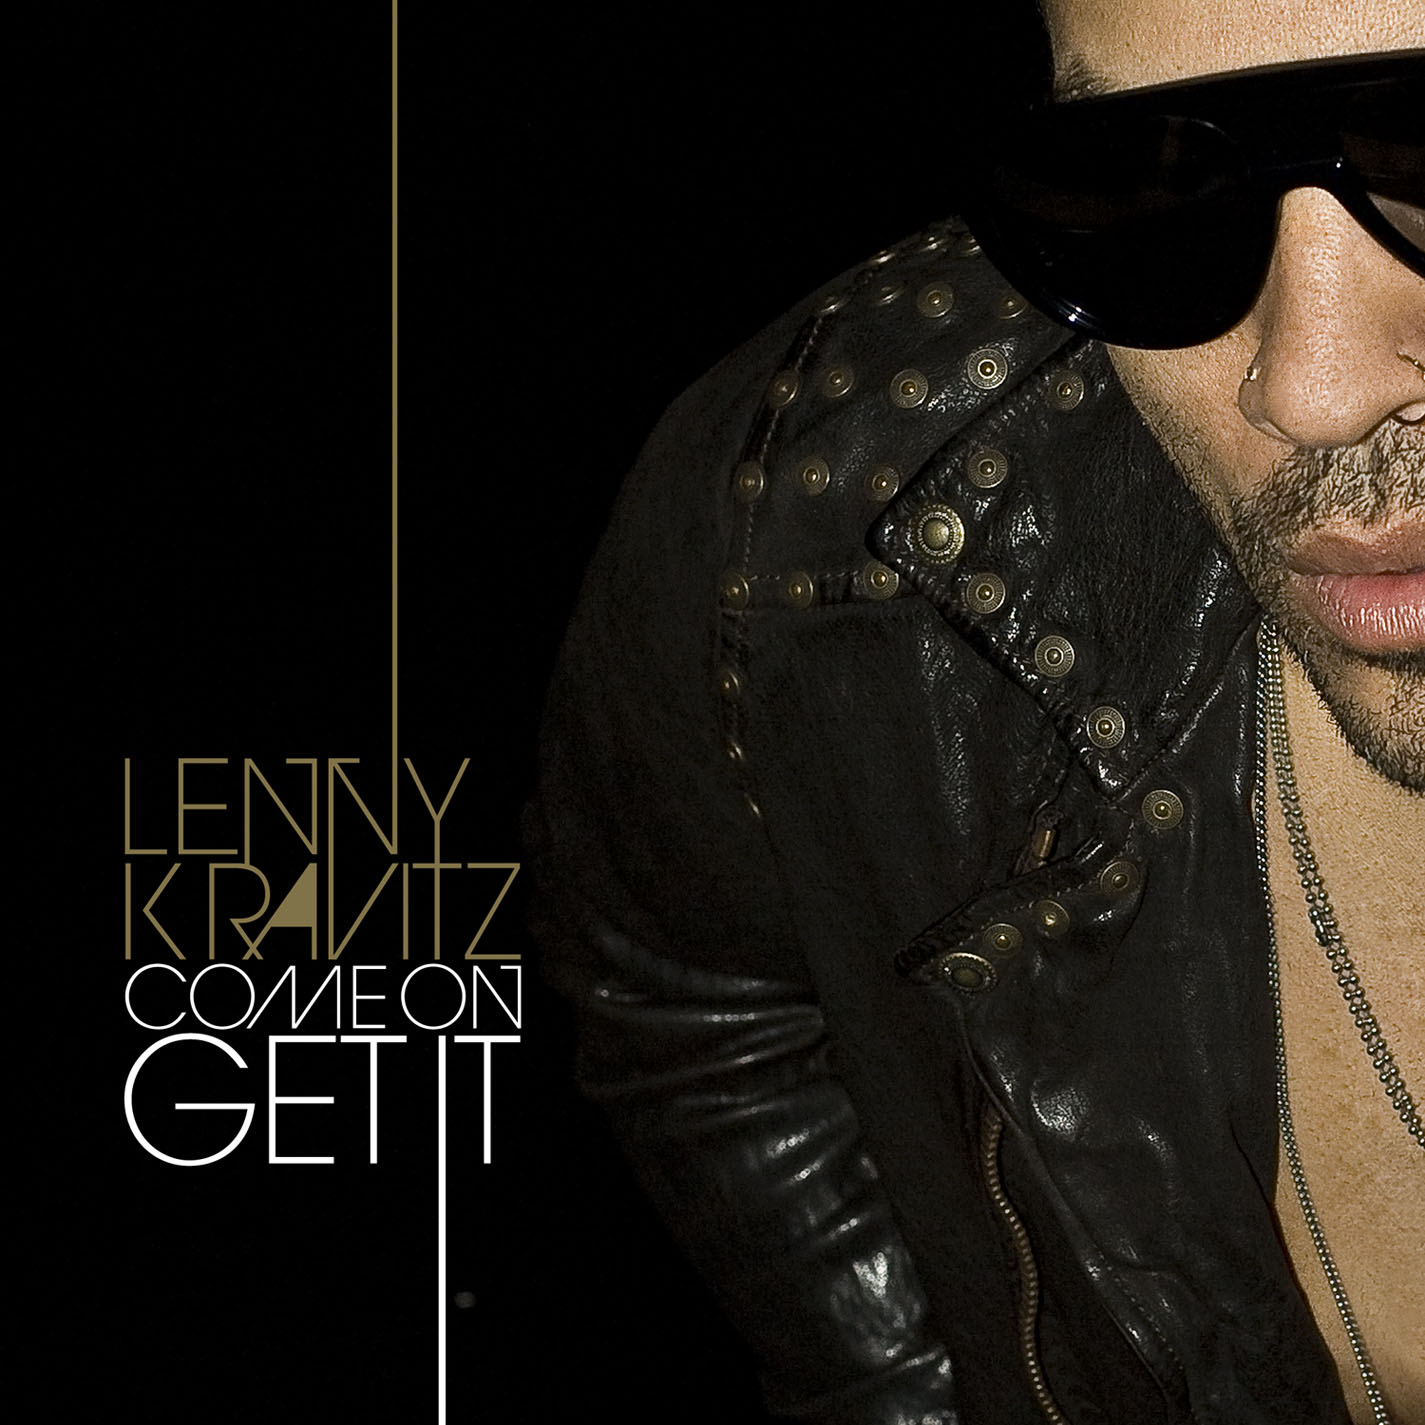 http://1.bp.blogspot.com/-YHrXcYwErAU/TbZIuxvB_PI/AAAAAAAABGY/mu6_GOhKJvg/s1600/Lenny-Kravitz-Come-On-Get-It%2B%2528single%2529.jpg